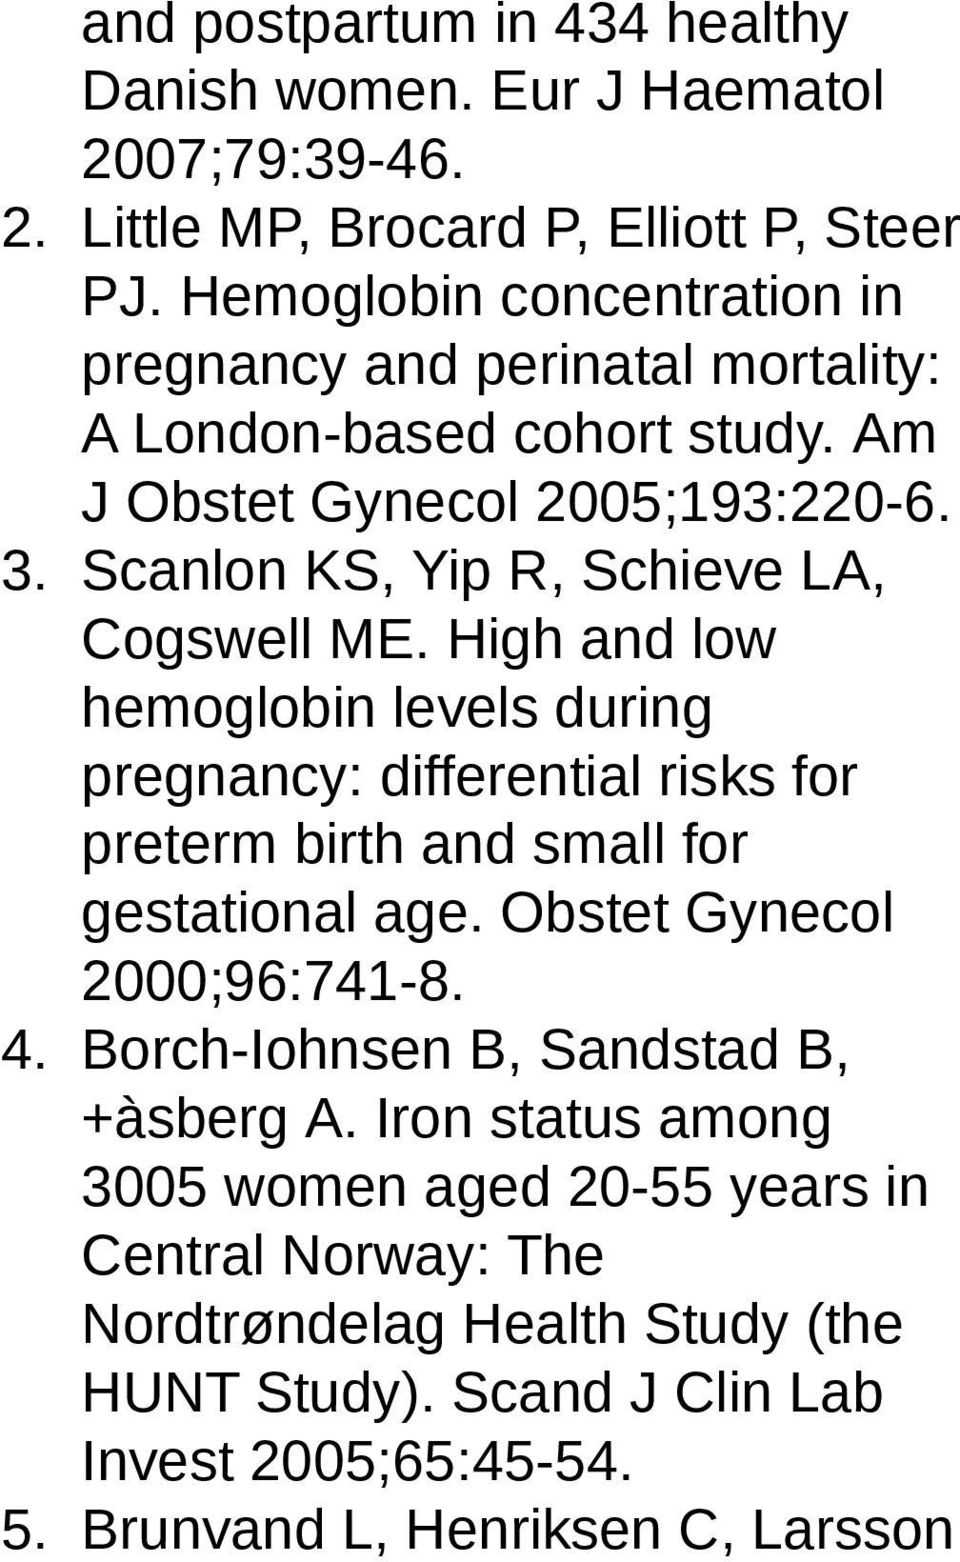 Scanlon KS, Yip R, Schieve LA, Cogswell ME. High and low hemoglobin levels during pregnancy: differential risks for preterm birth and small for gestational age.